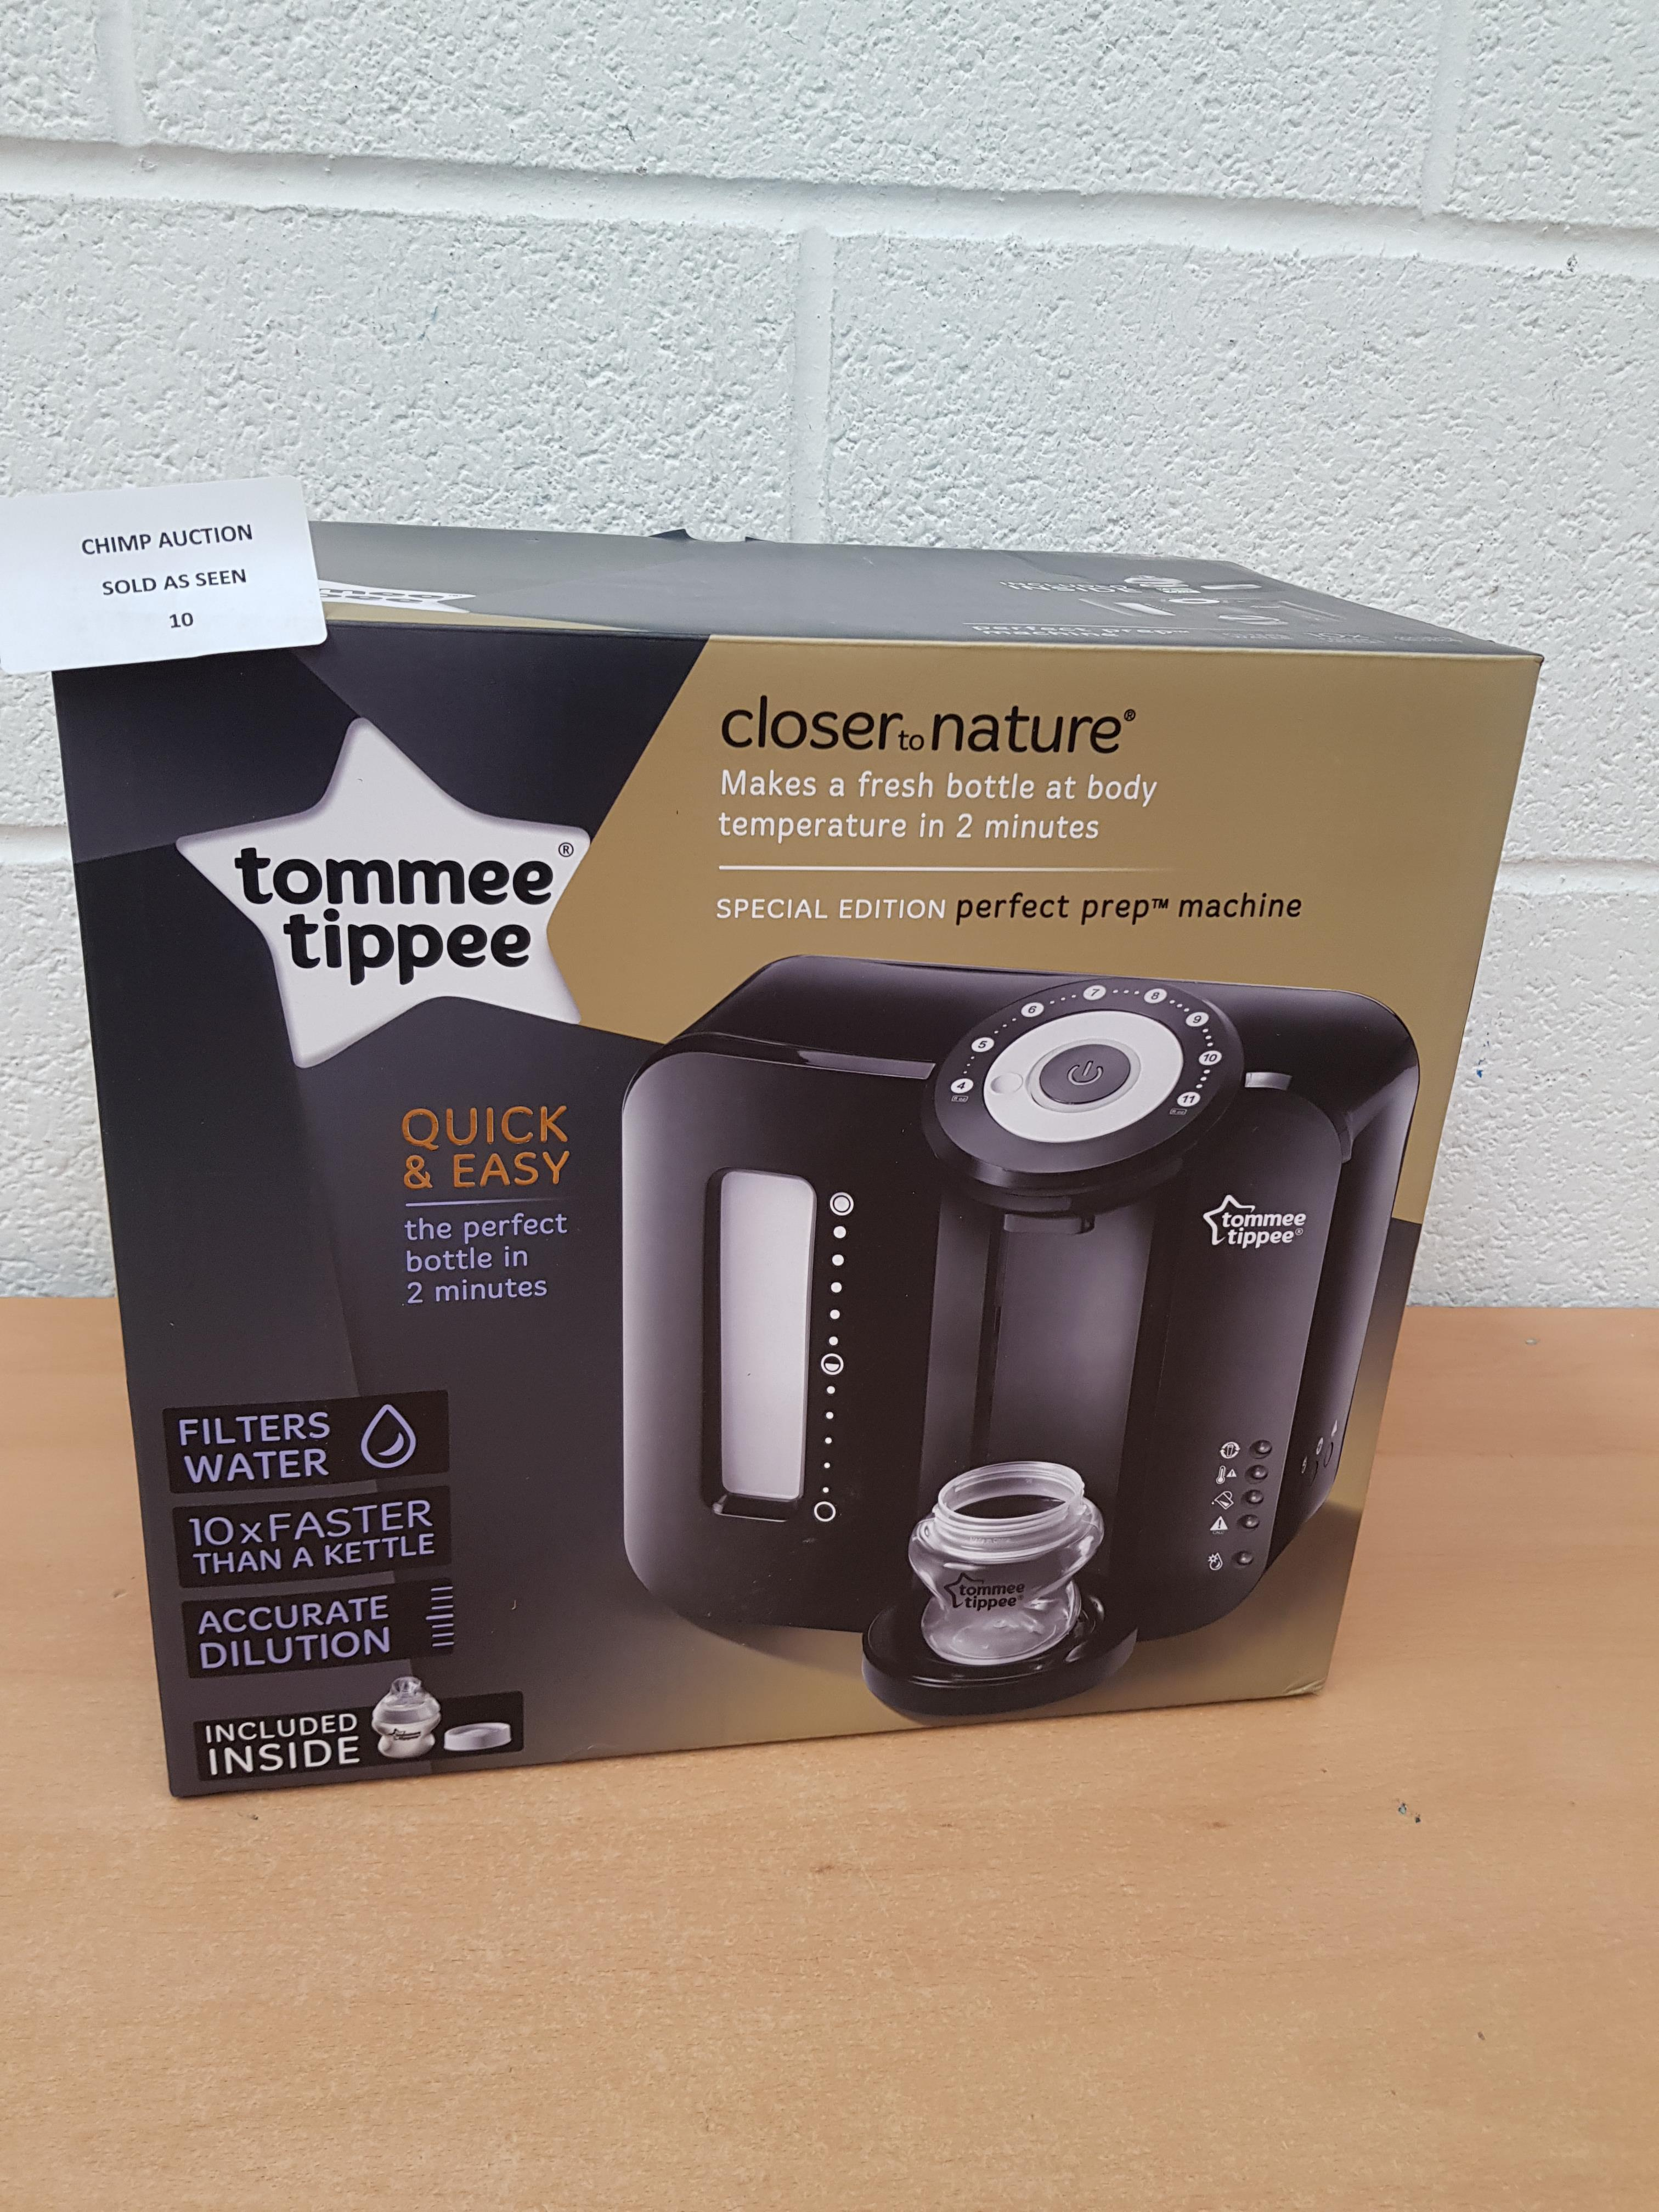 Lot 10 - Tommee Tippee Perfect Prep Machine Special edition RRP £129.99.